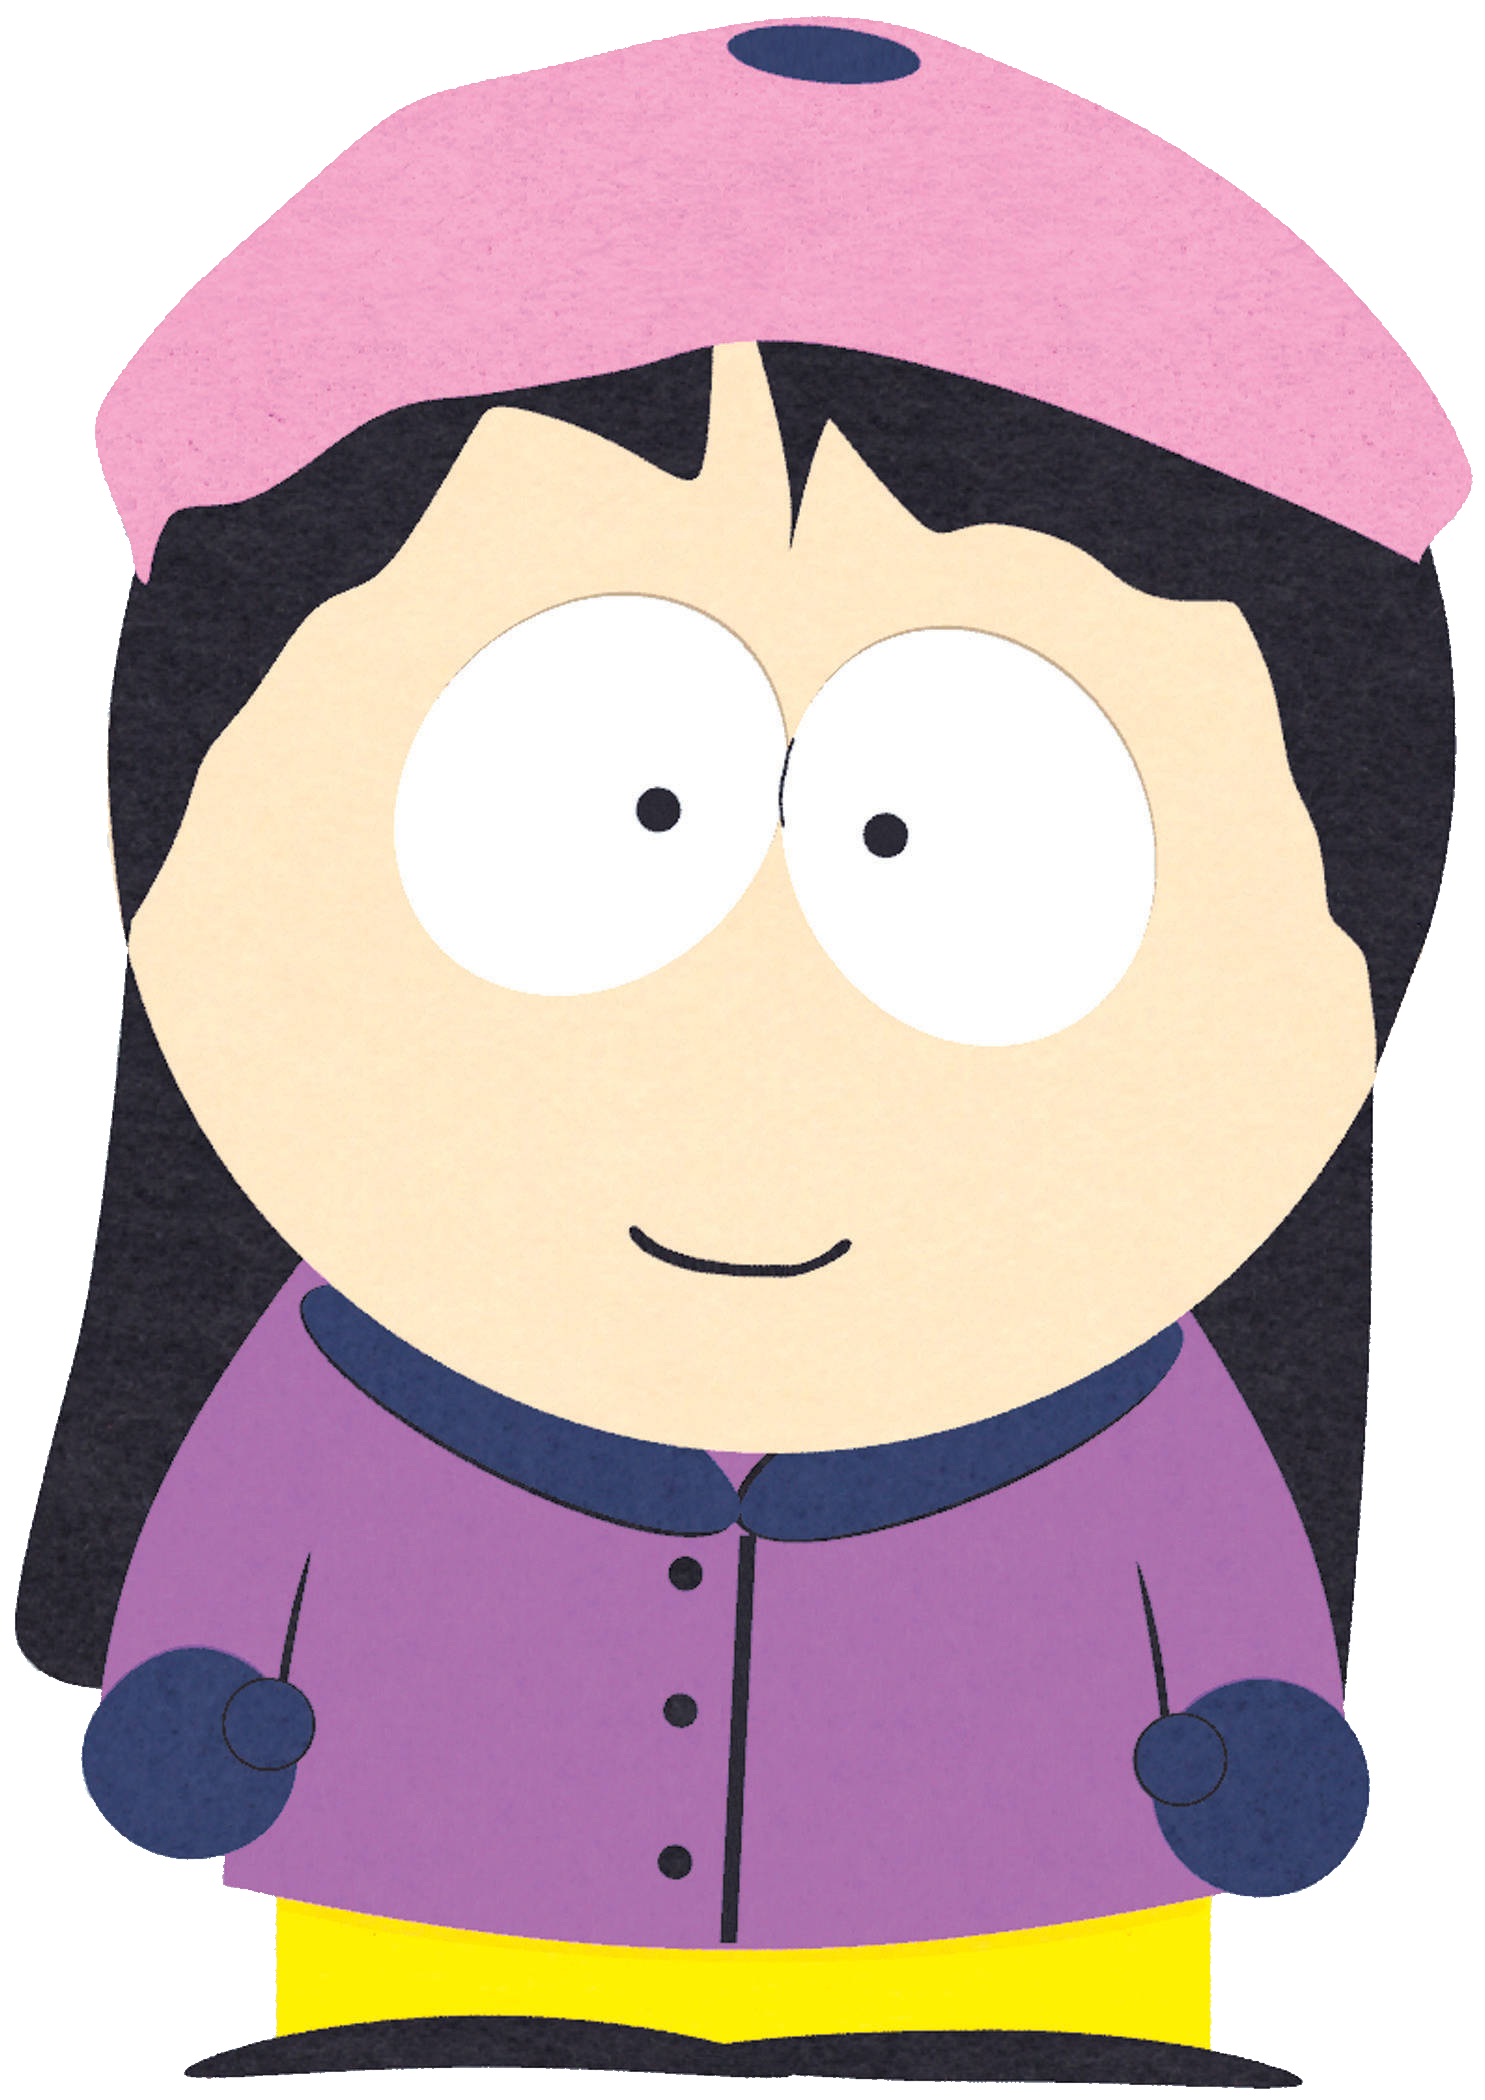 Wendy Testaburger South Park Characters South Park Wendy South Park